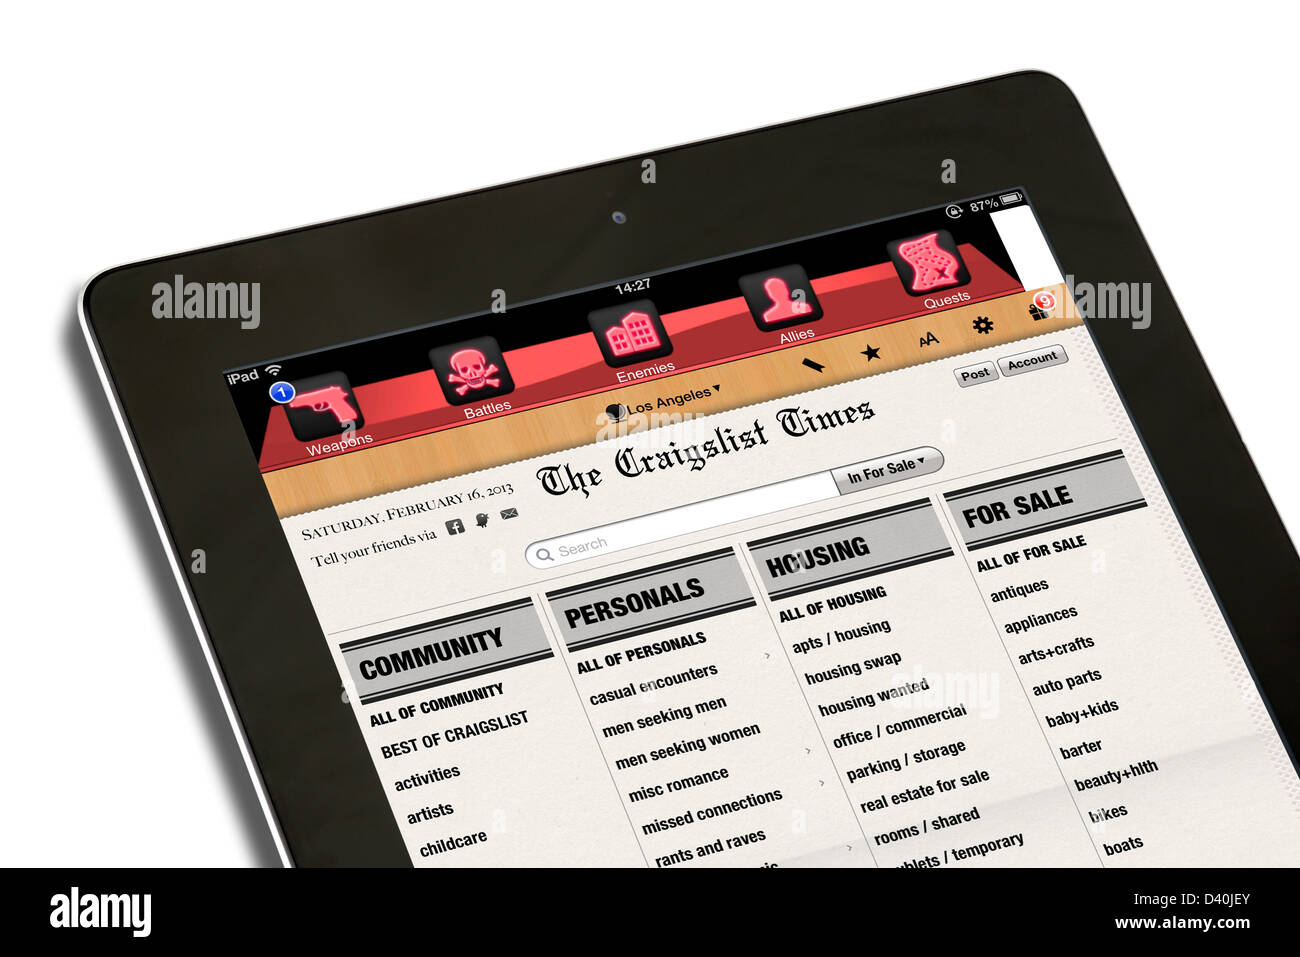 Personals Ads Stock Photos & Personals Ads Stock Images - Alamy